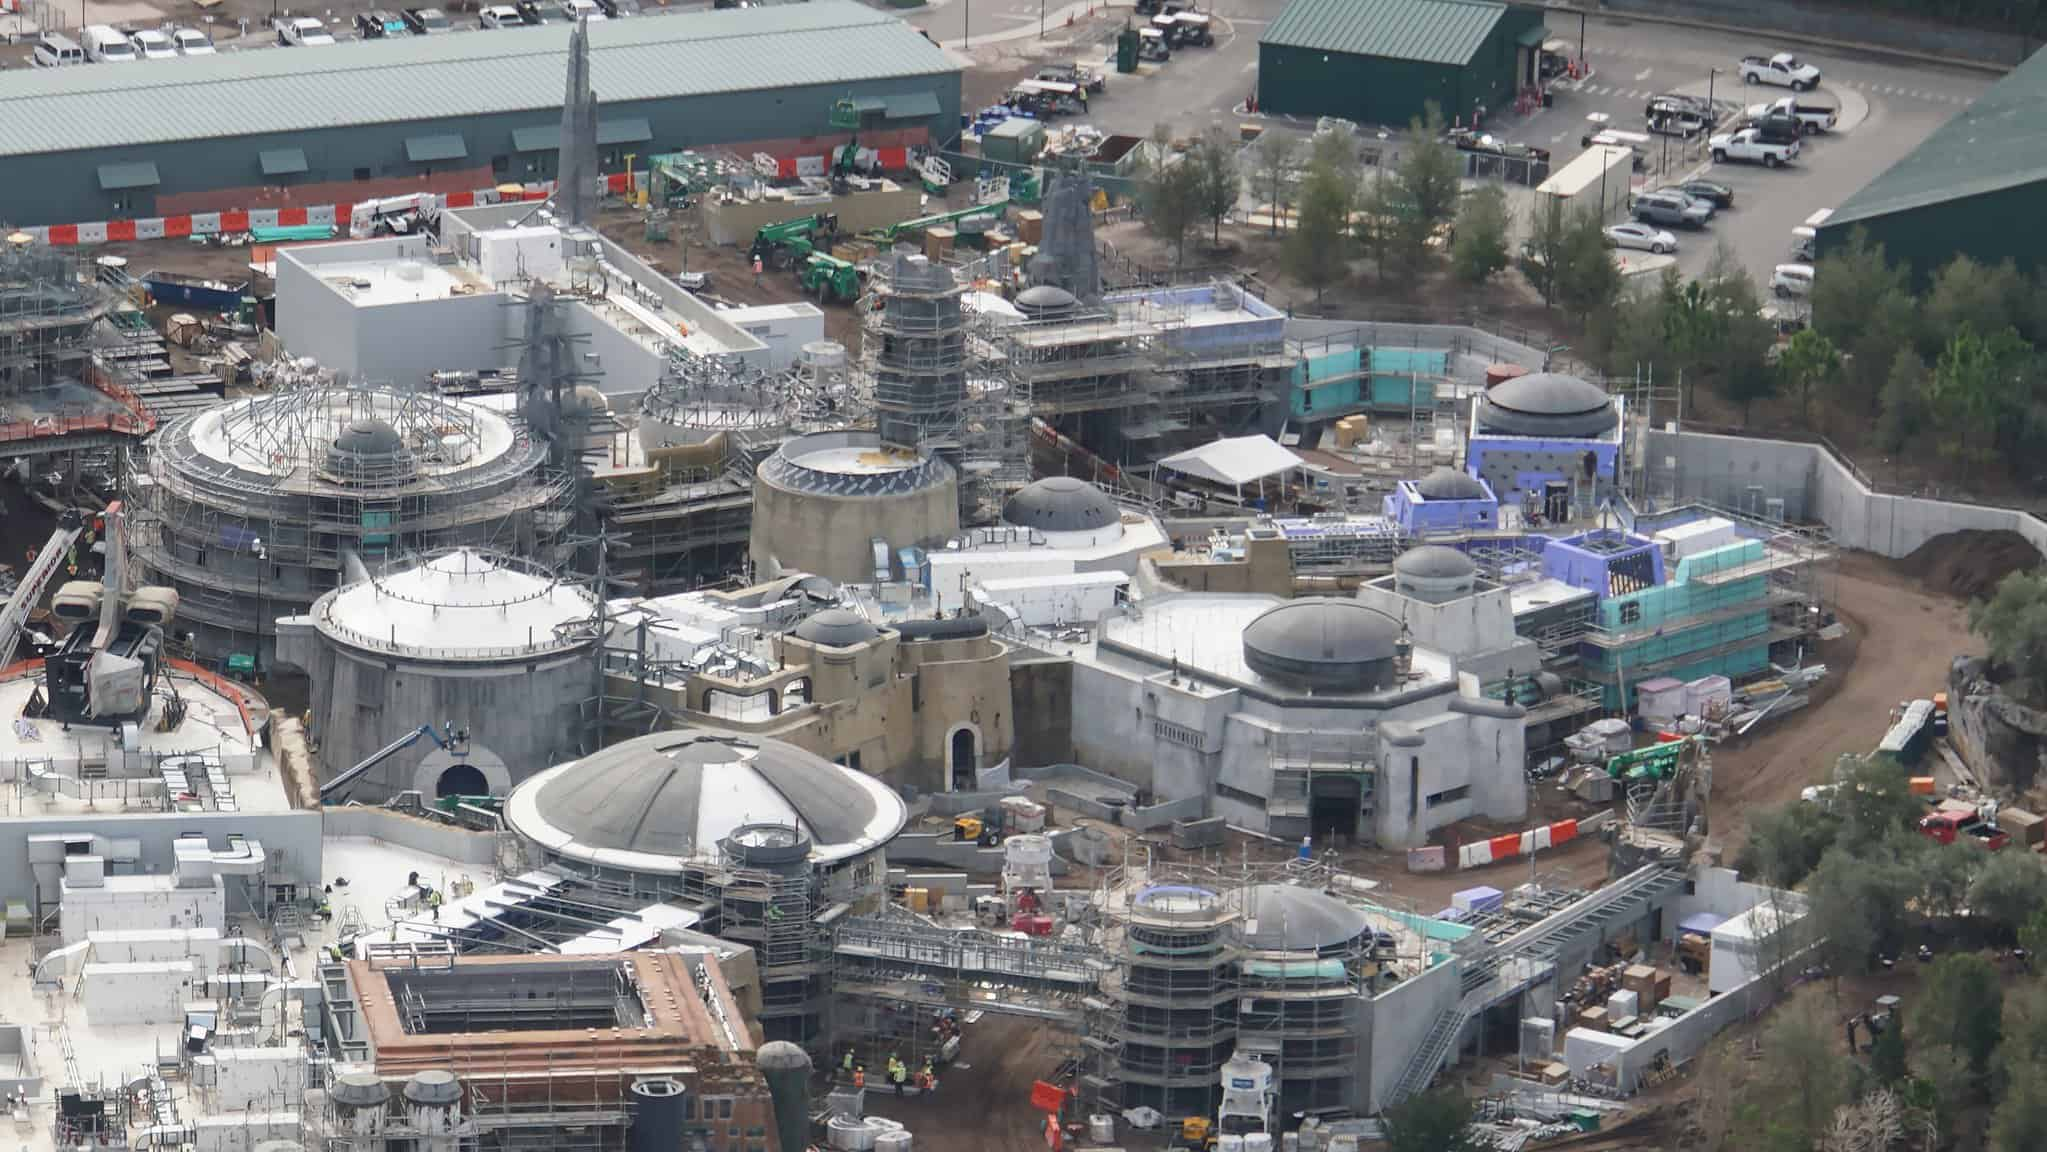 Galaxy's Edge Update February 2019 Black Spire Outpost side view